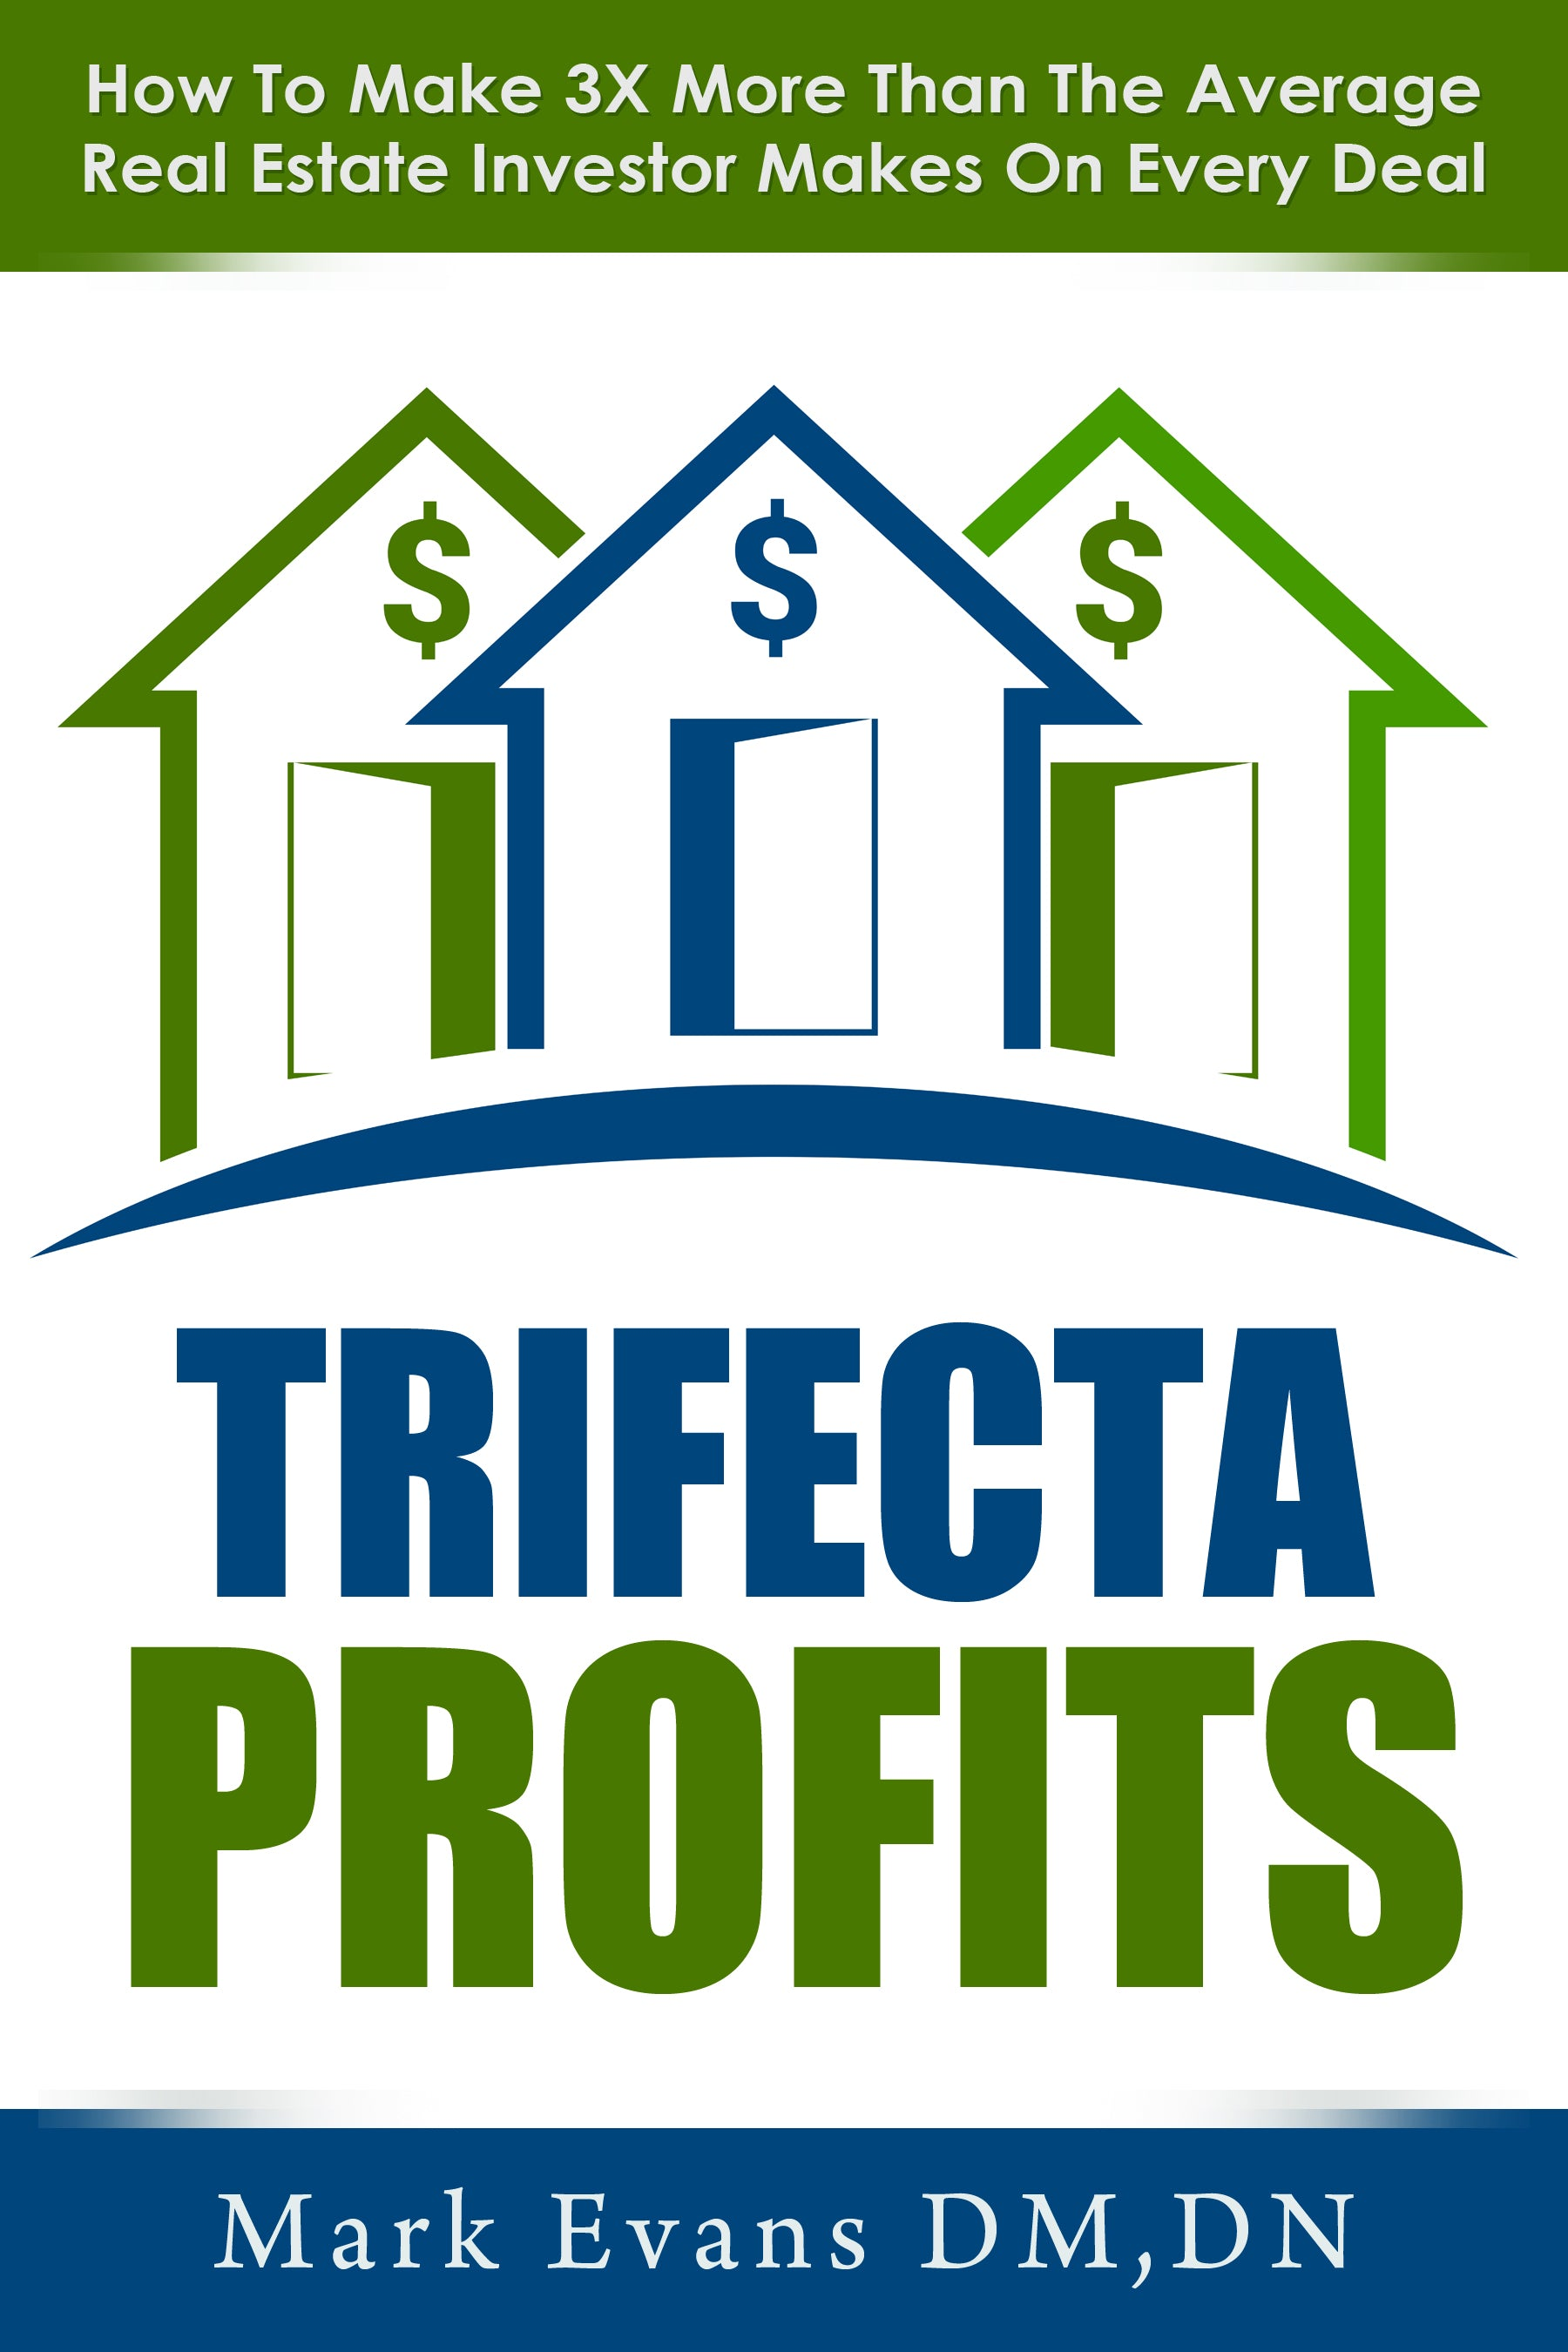 Click here to learn more about the Trifecta Profits book